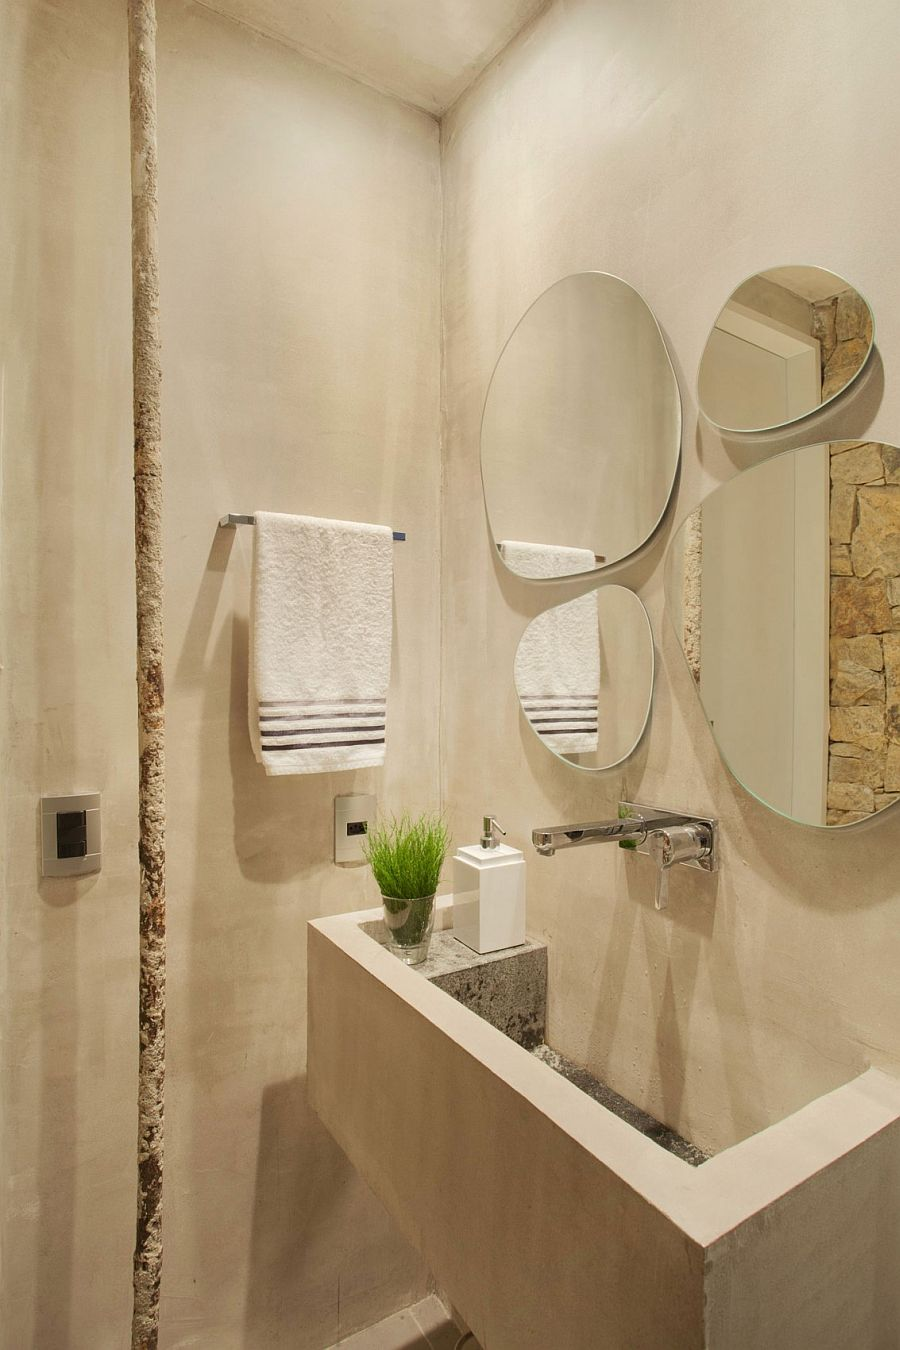 Fabulous collection of mirrors above the bathroom vanity